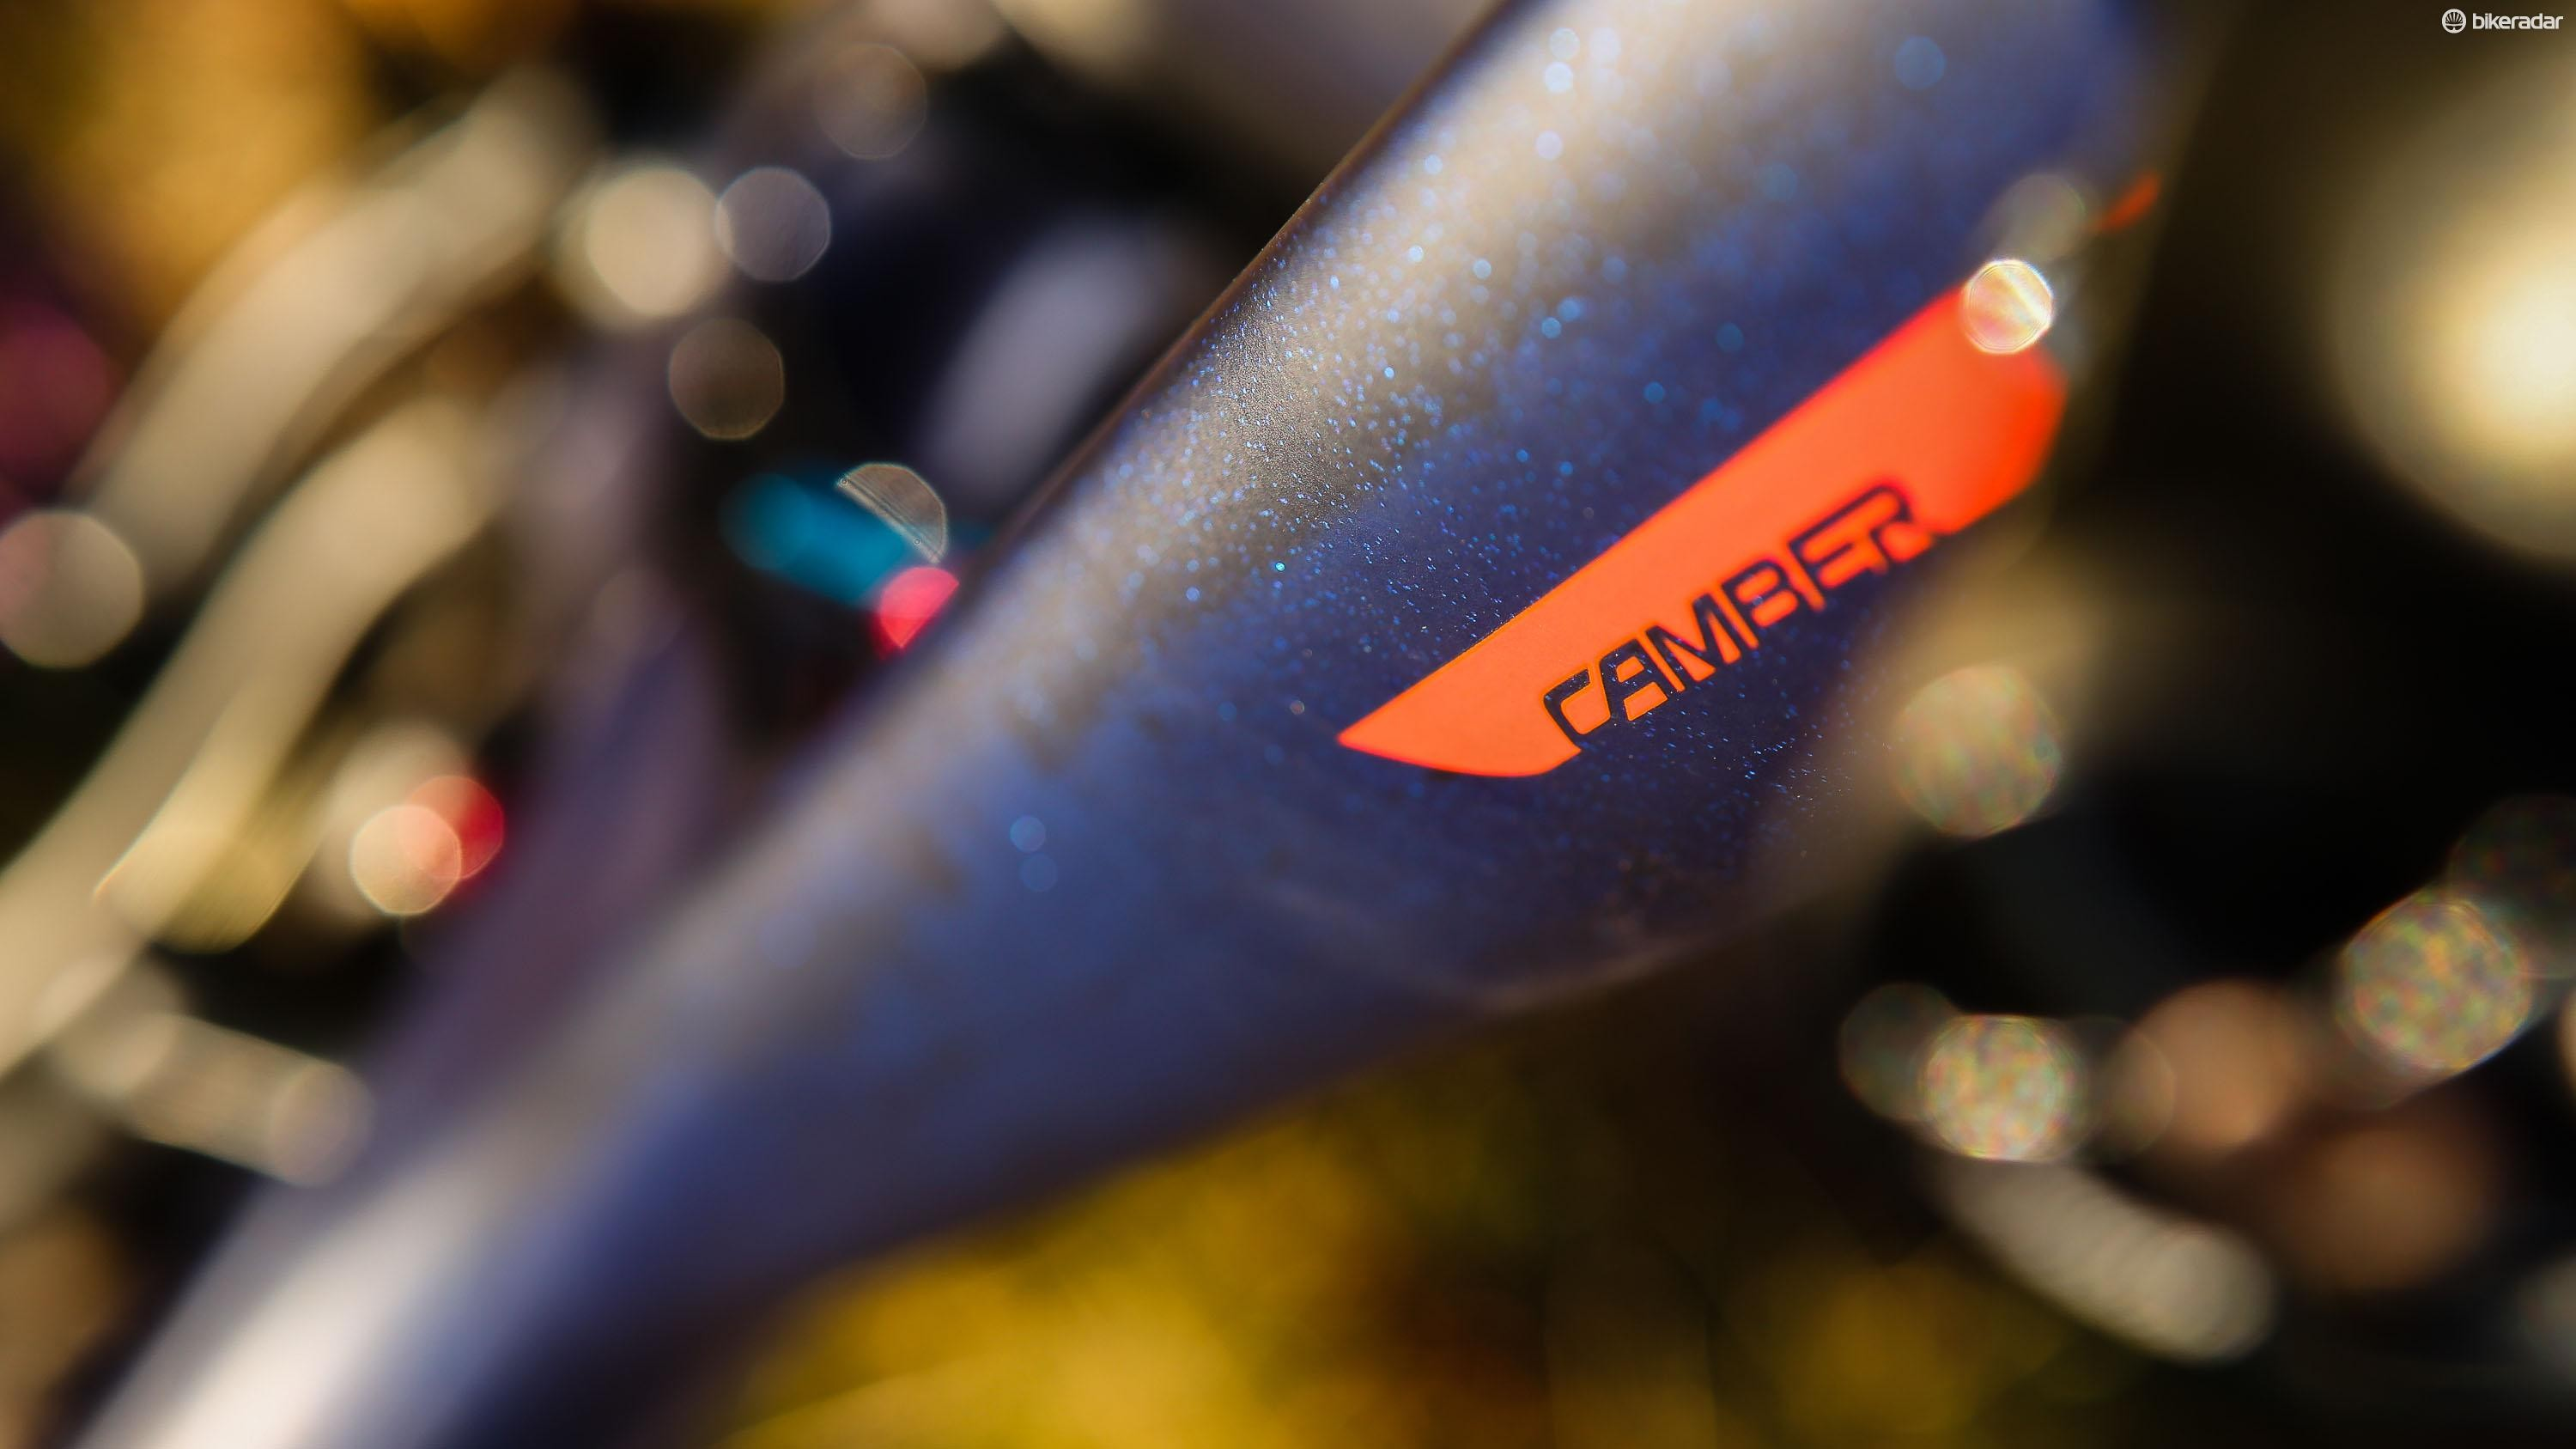 The bike features a subtle sparkly finish — and attracts a LOT of attention